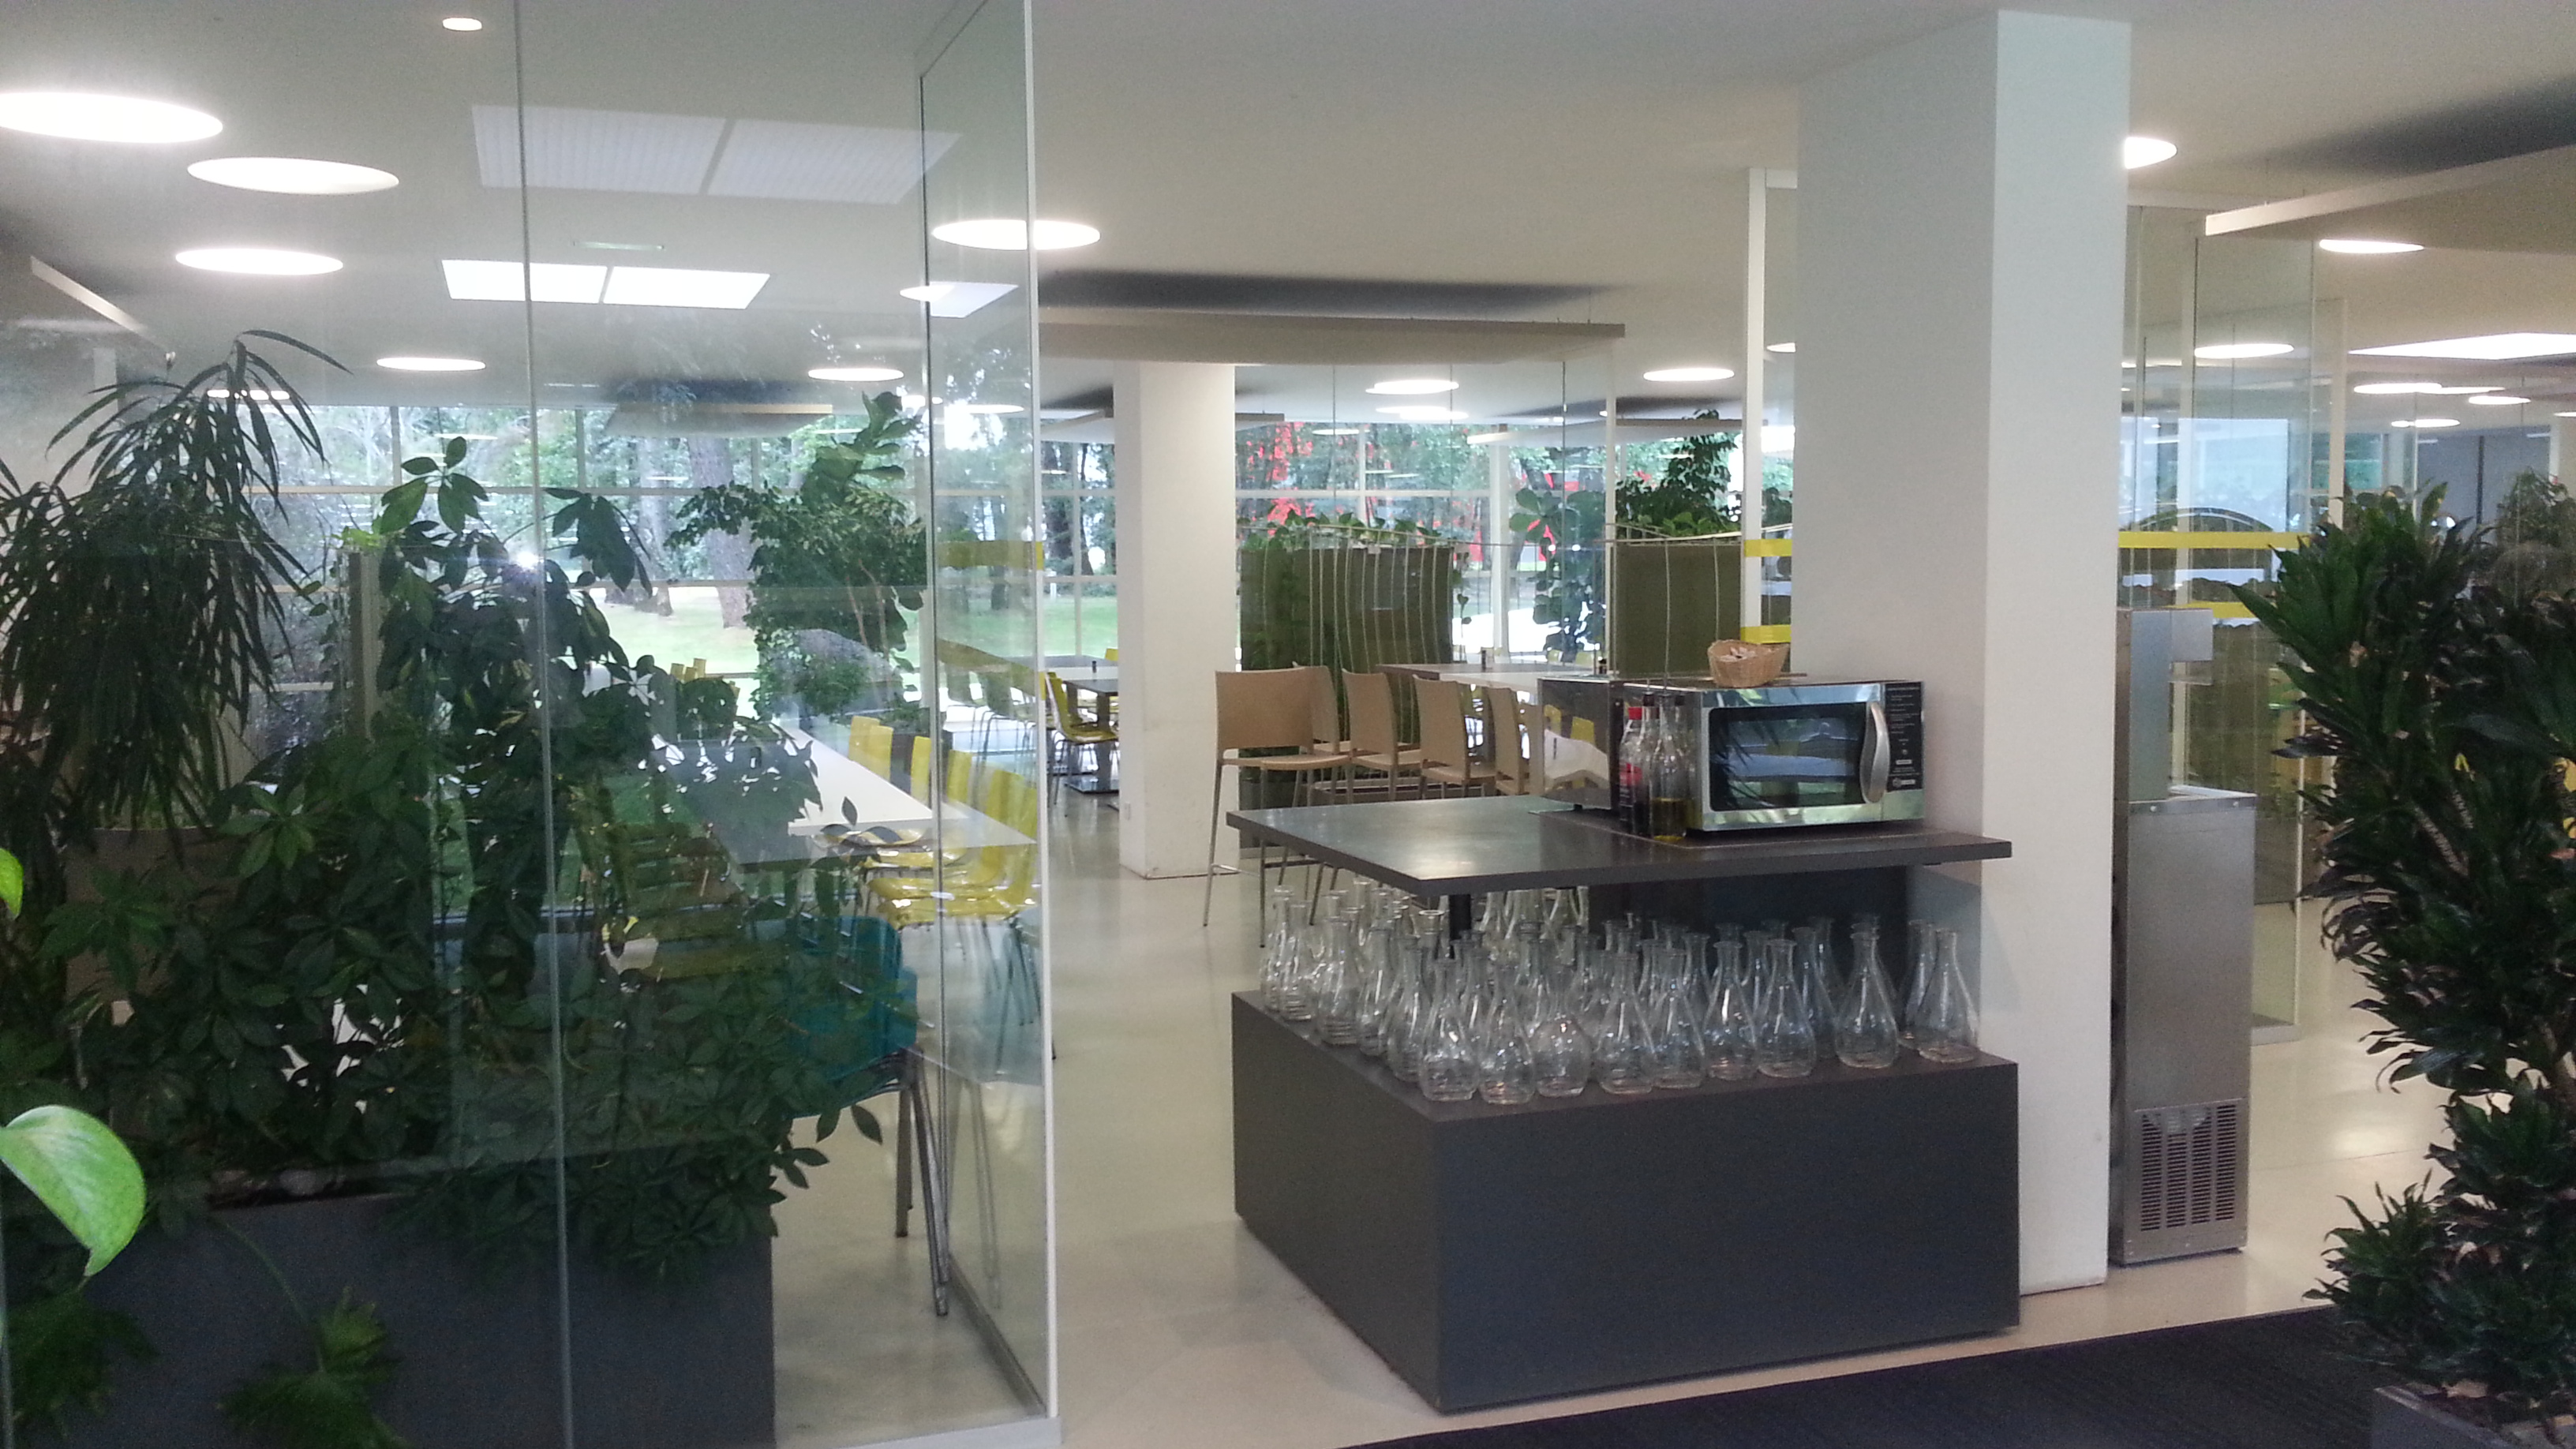 AGENCEMENT CAFETARIA ET ACCUEIL LECTRA SYSTEMS 2